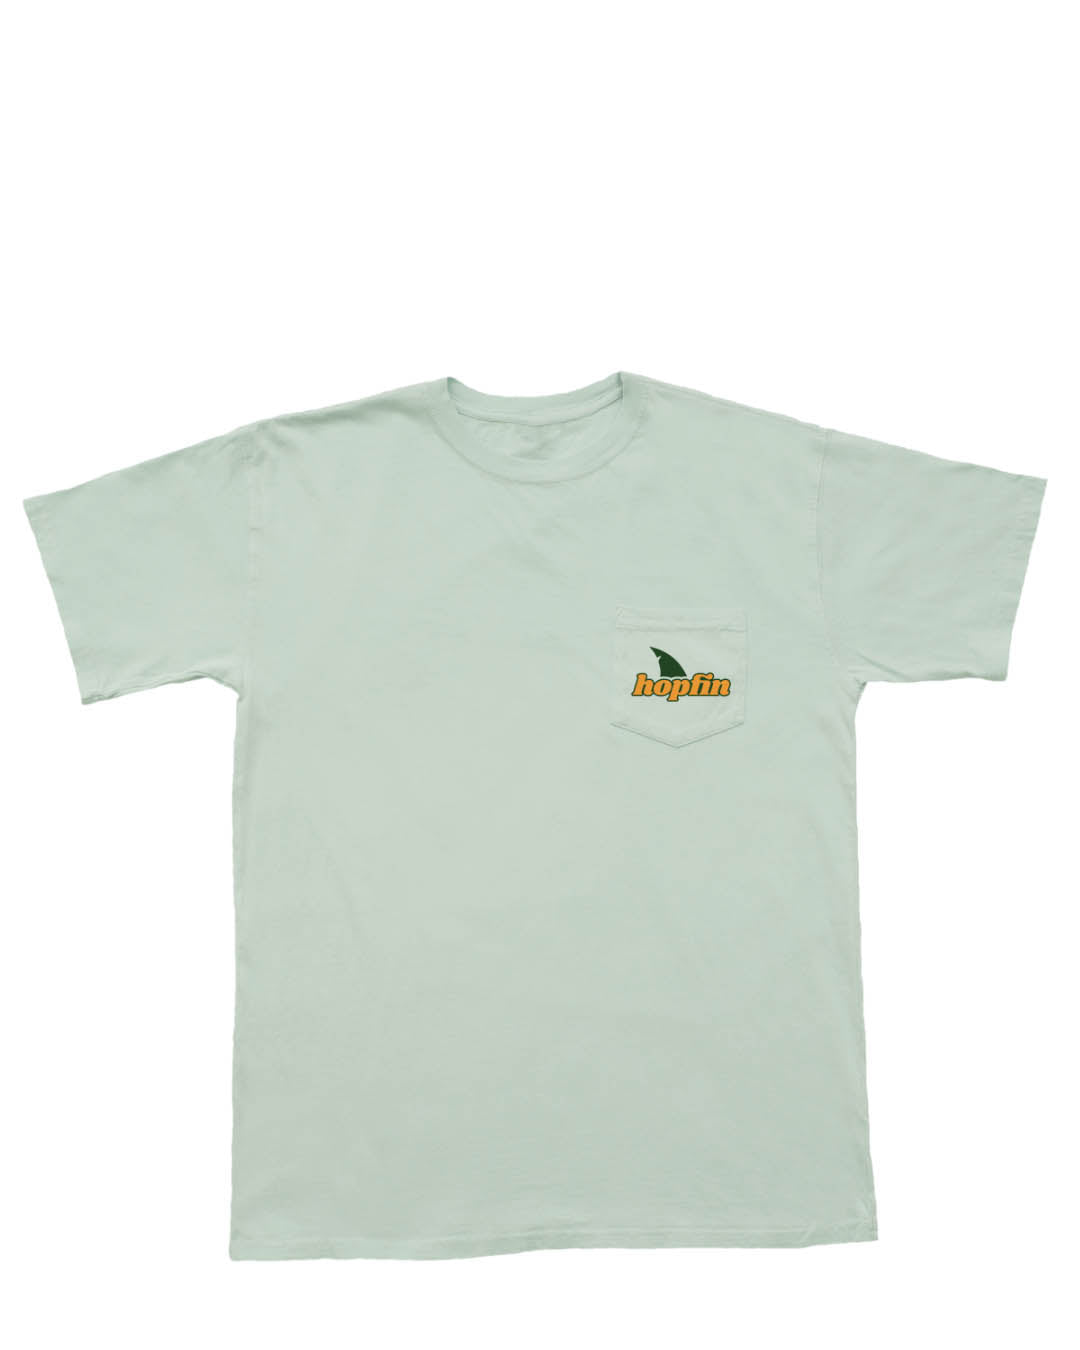 • NOW AVAILABLE • Hopfin Tee